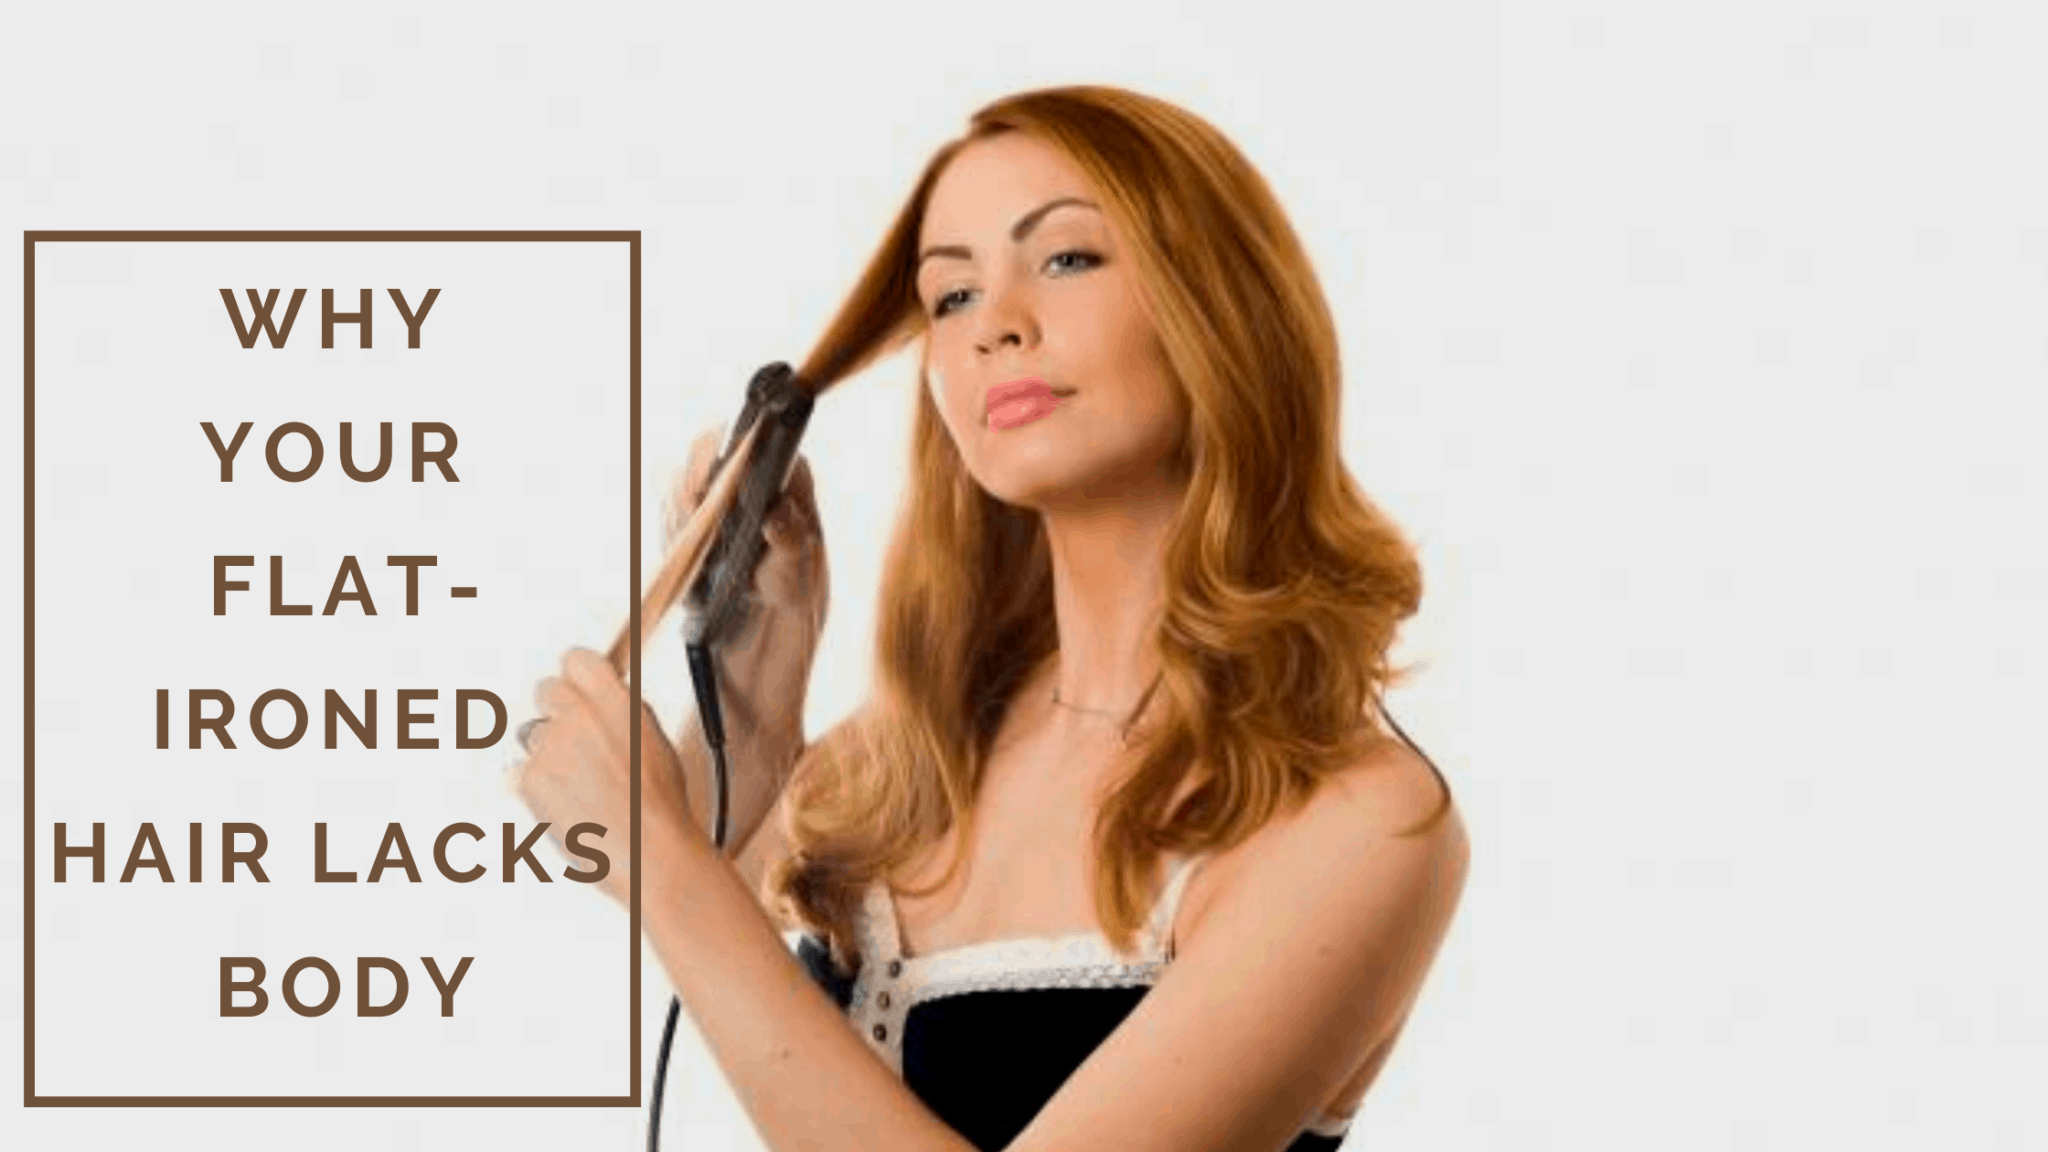 Why Your Flat-Ironed Hair Lacks Body 1